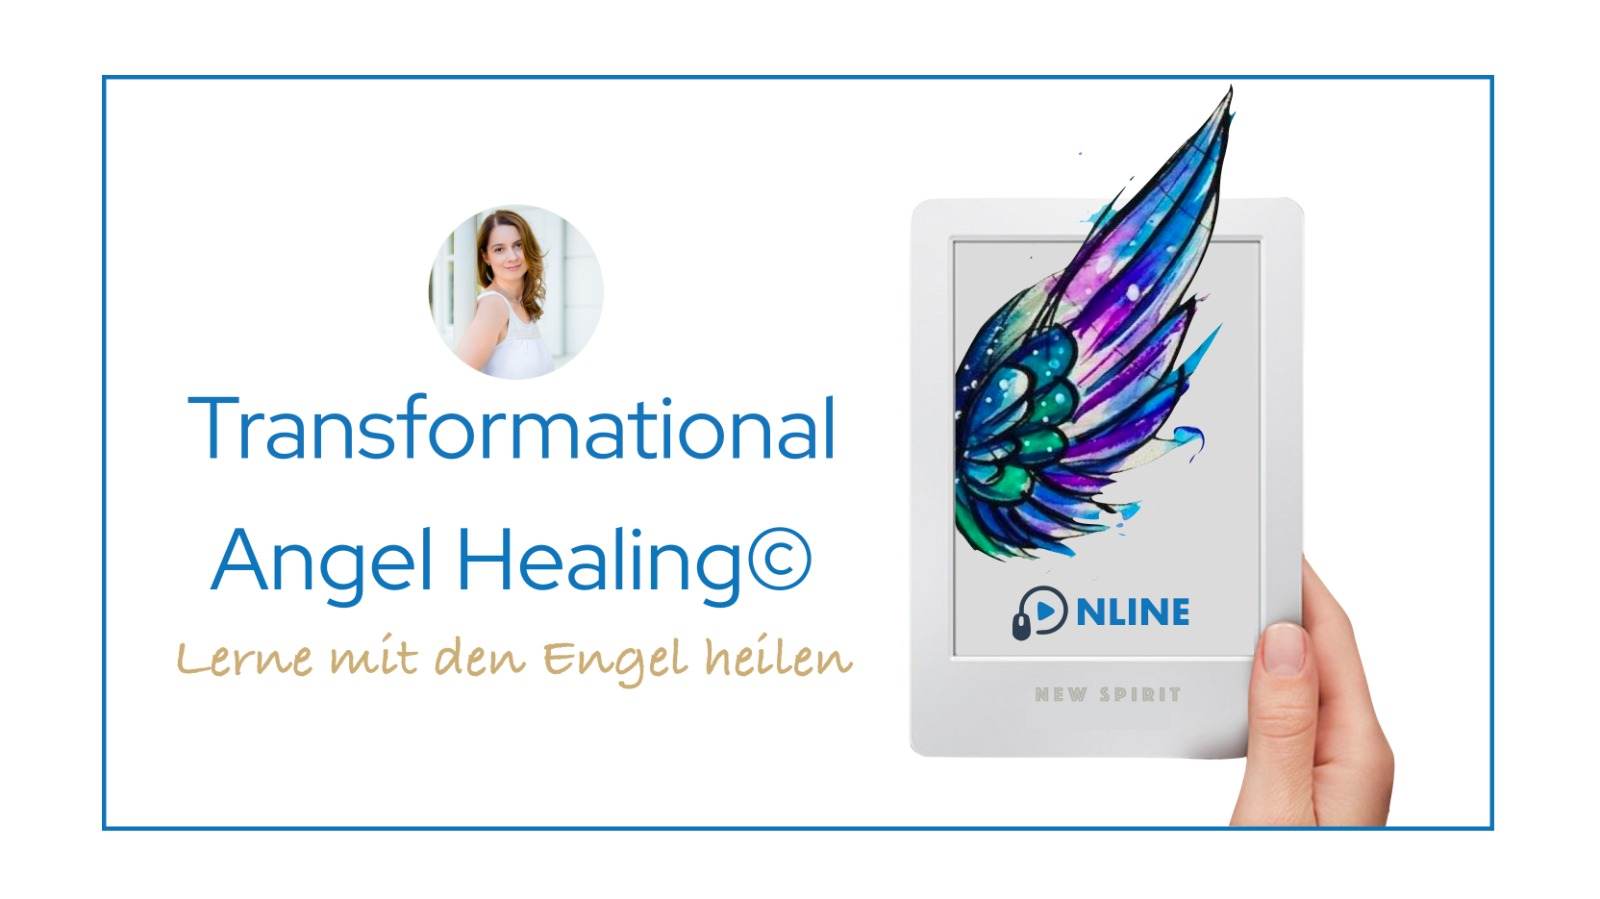 Transformational Angel Healing©